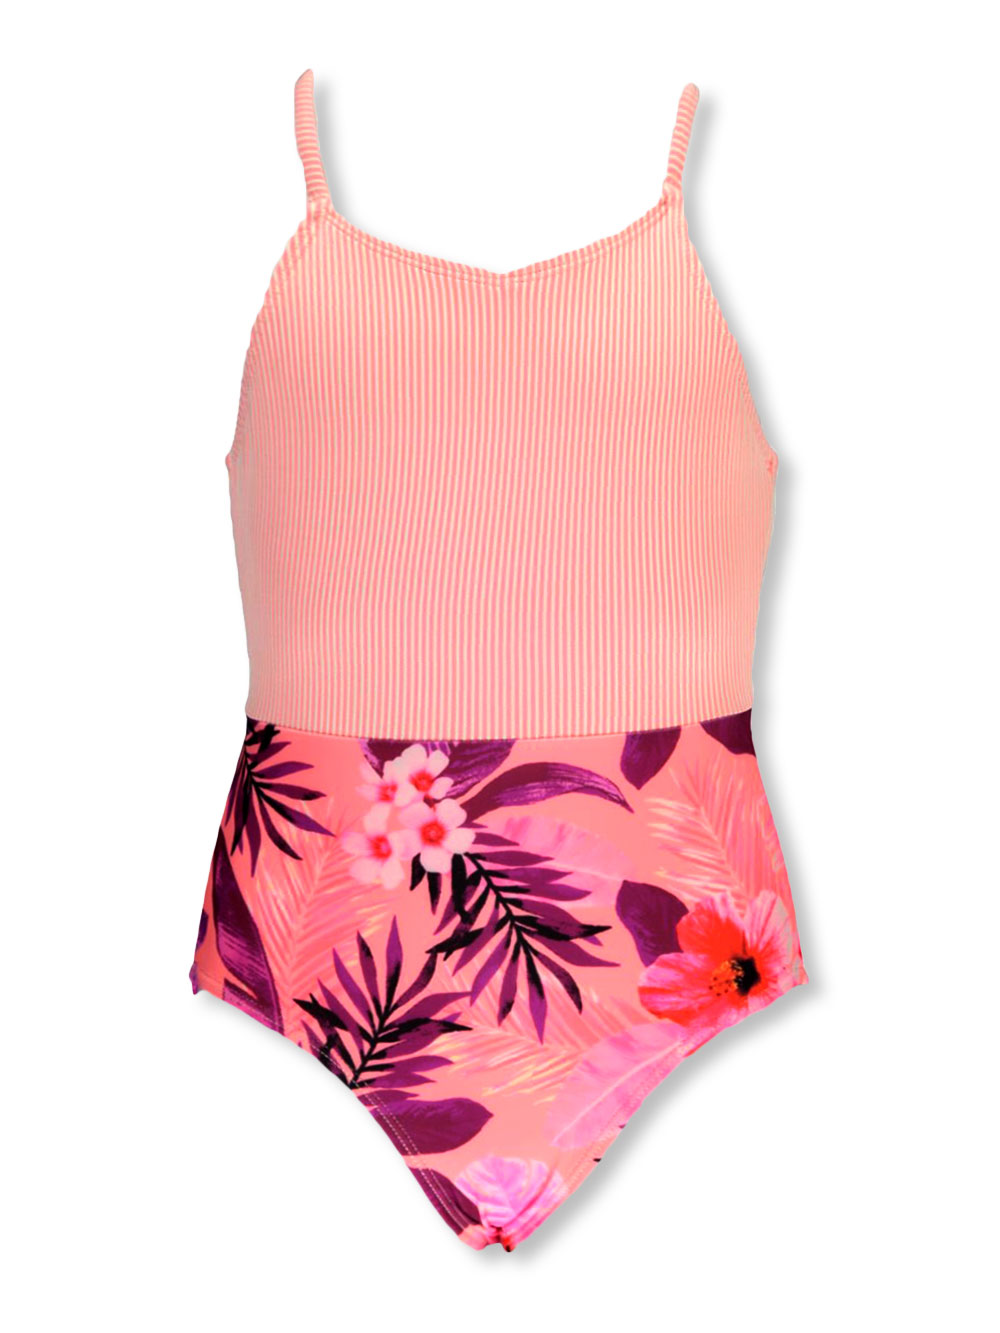 Size 12-14 Swimwear for Girls